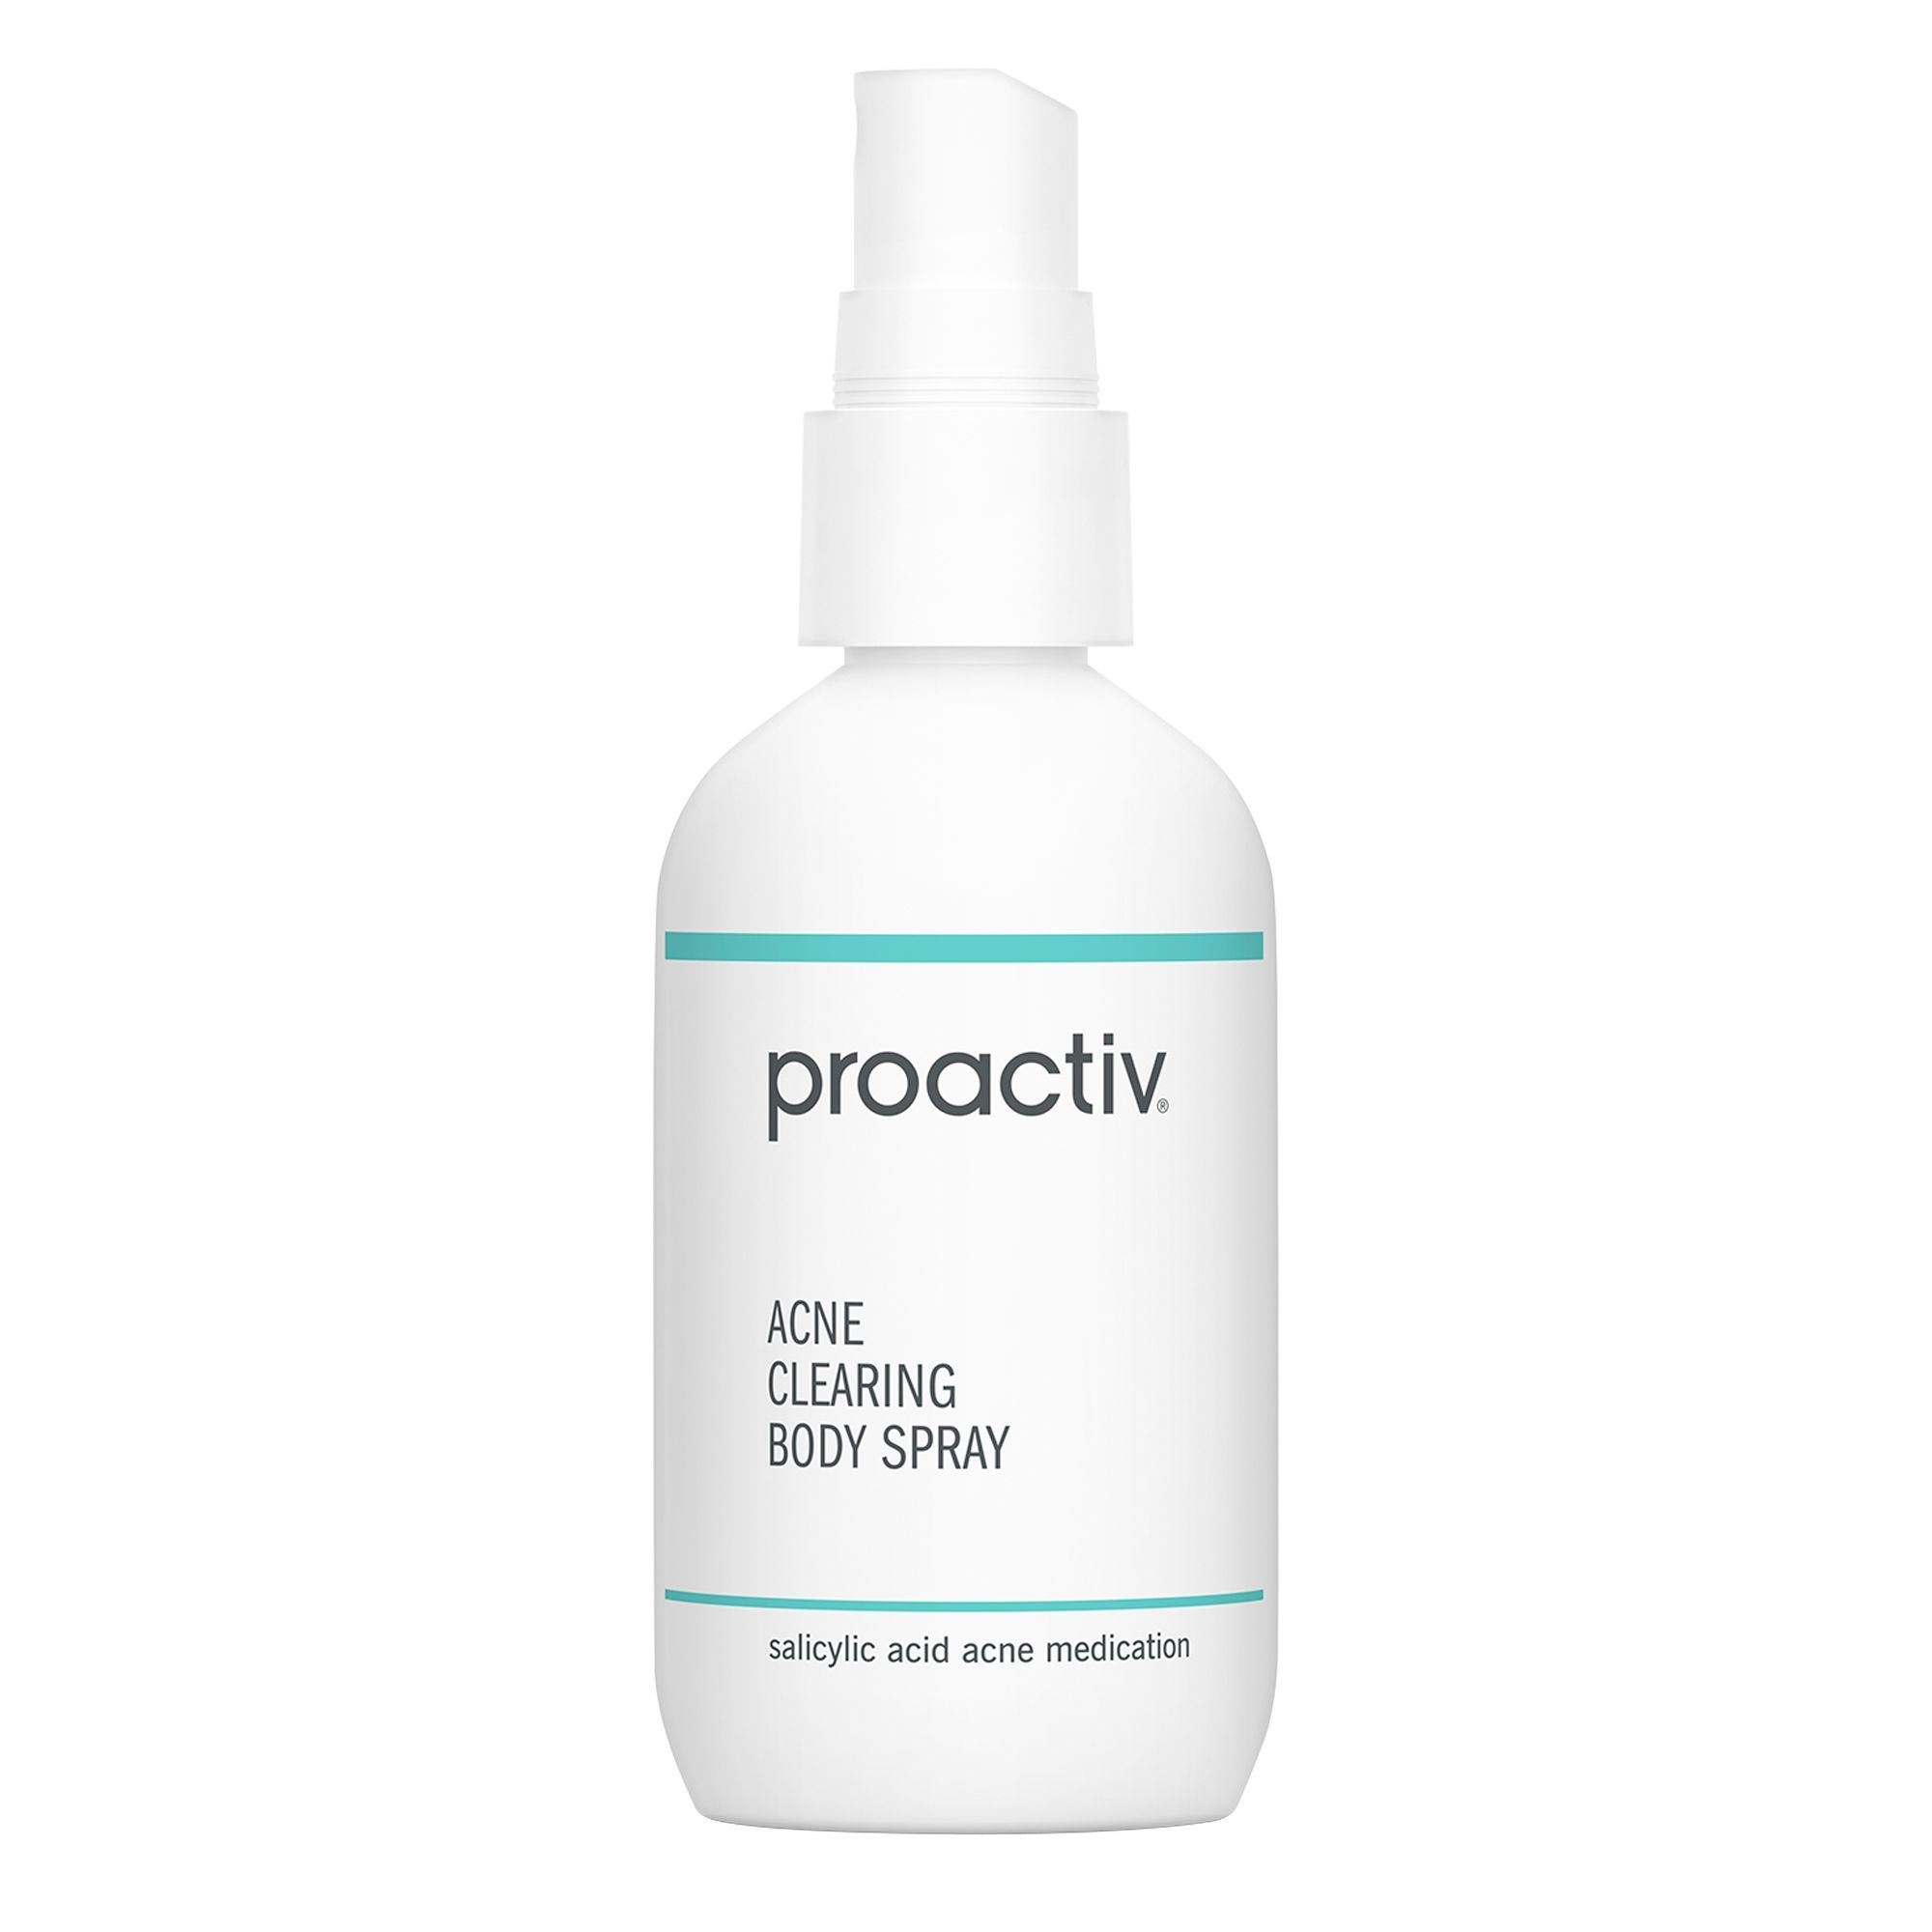 What Is The Best Way To Get Rid Of Body Acne And Bacne Our New Body Acne Spray Clears And Prevents Acne With Salicy Body Spray Clear Acne Skin Care Treatments